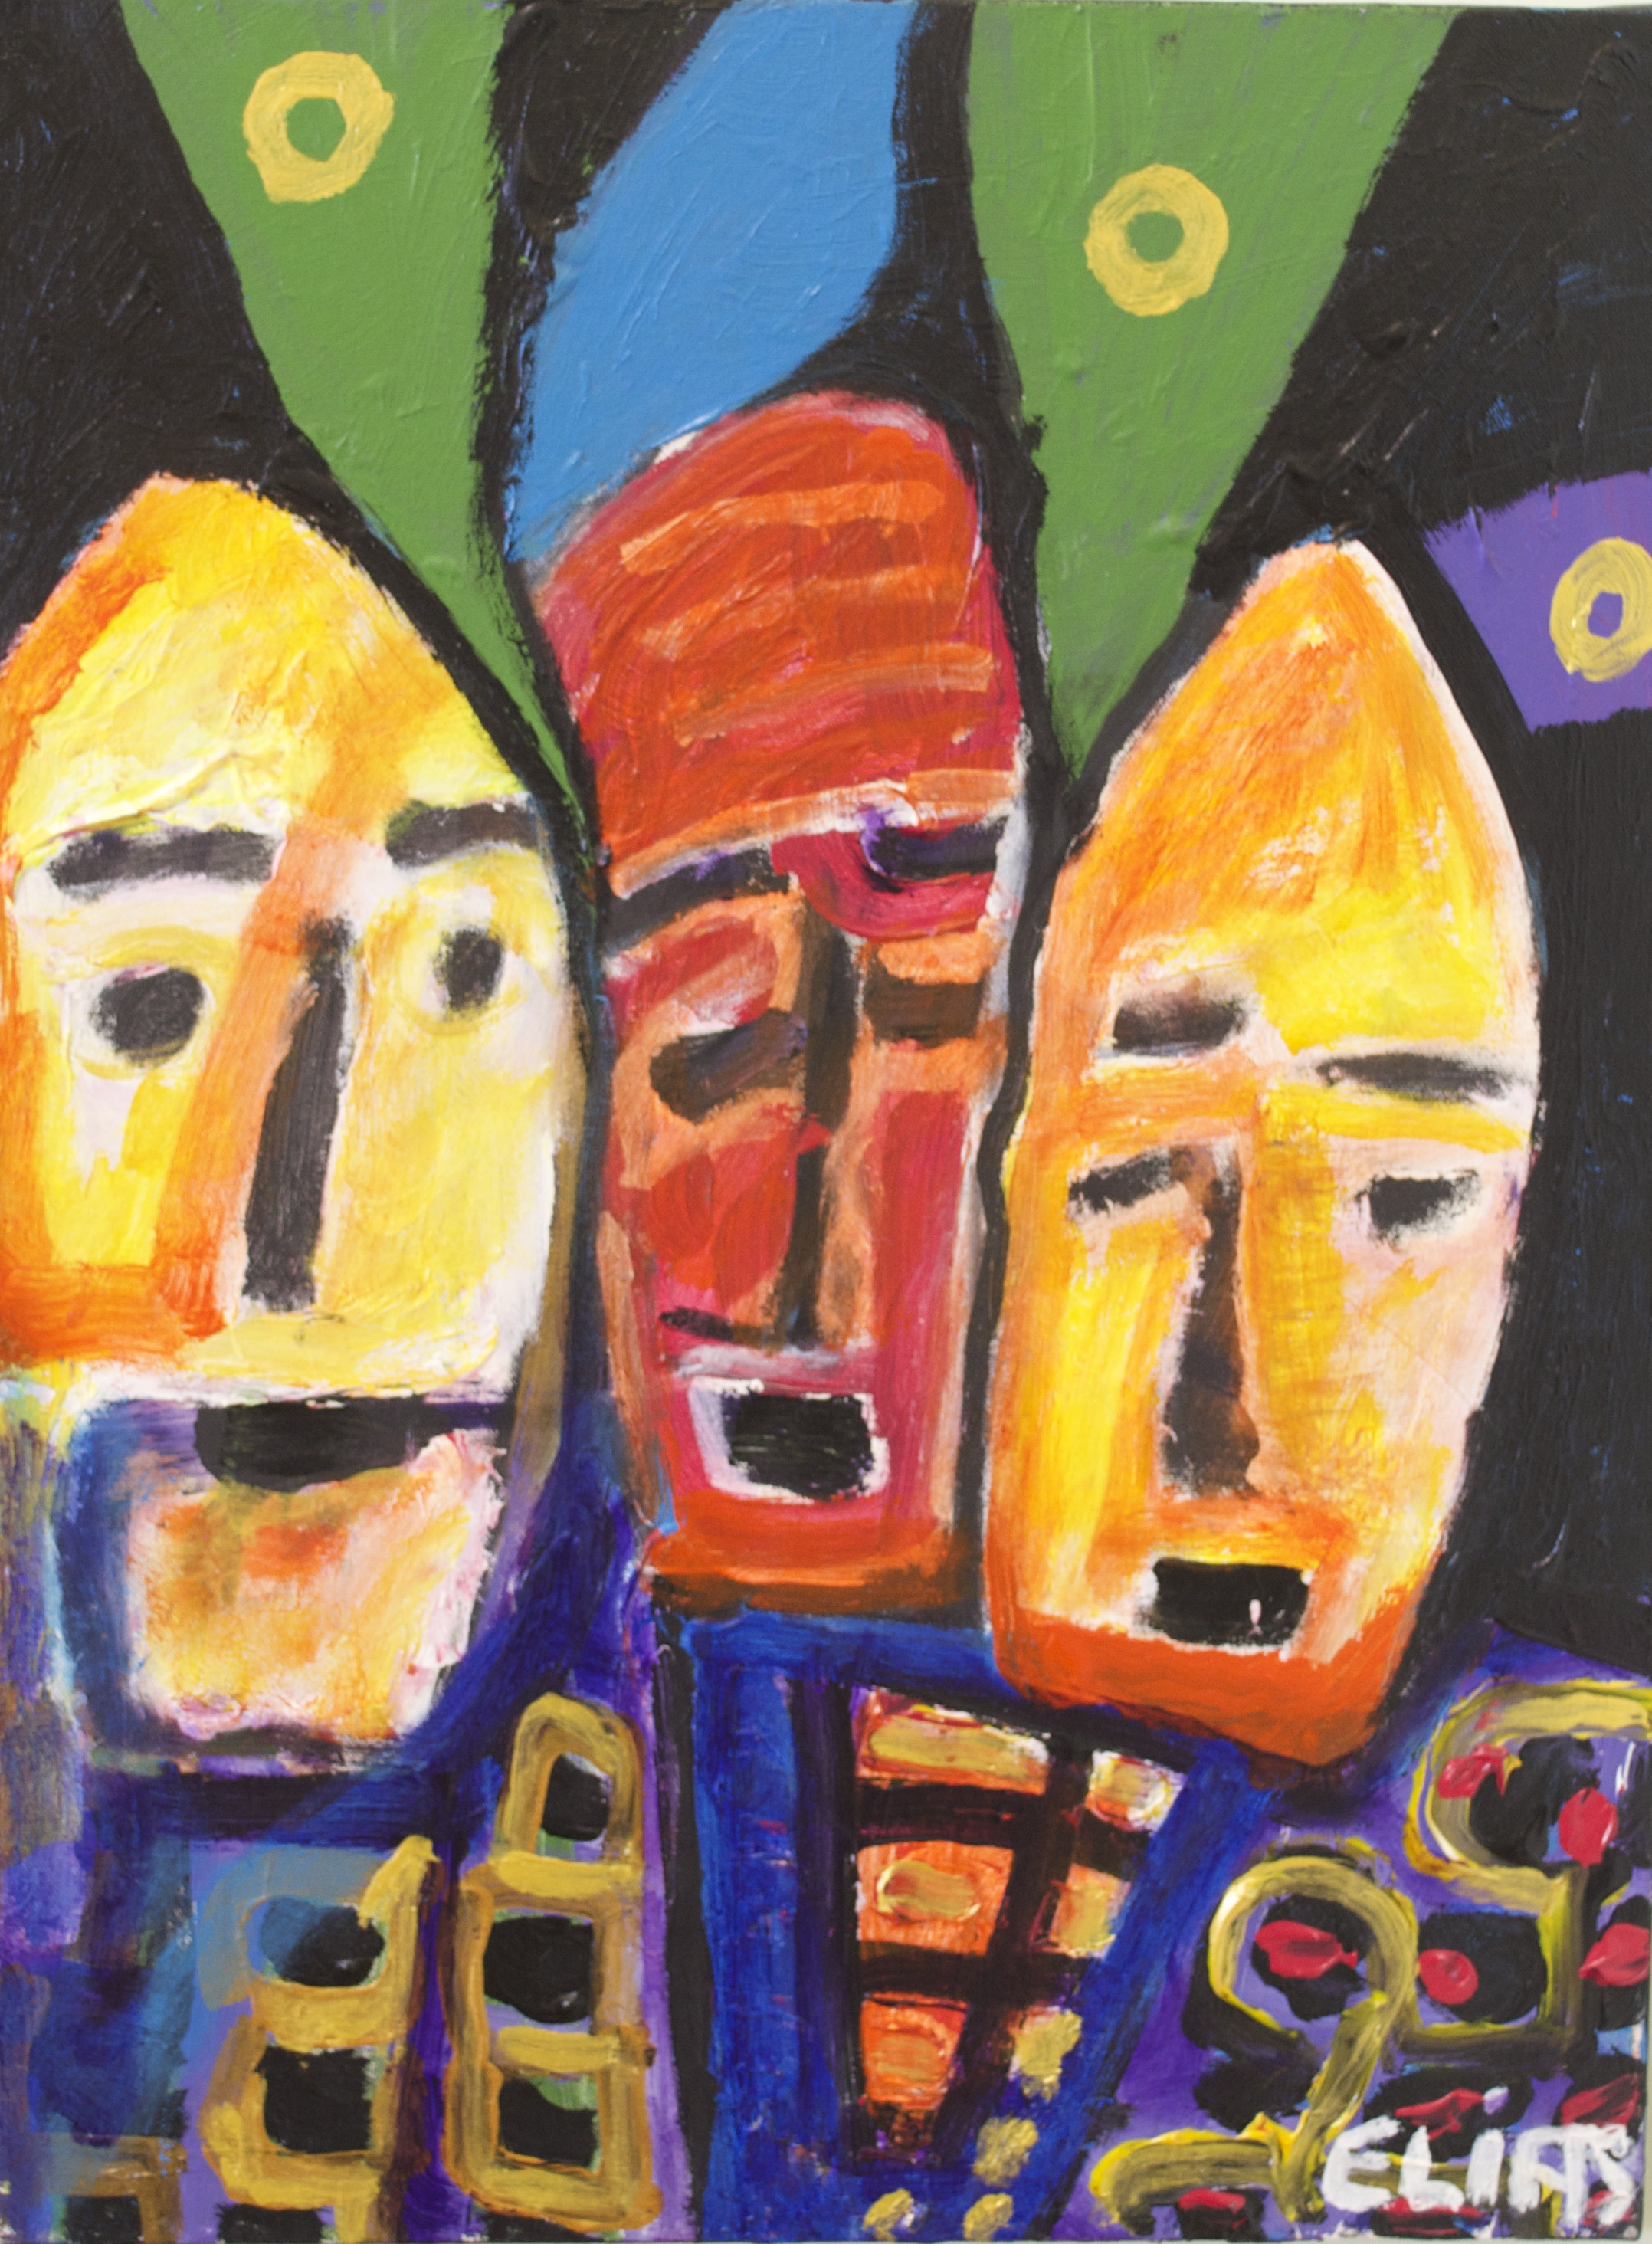 Colourful painting with 3 faces on black background